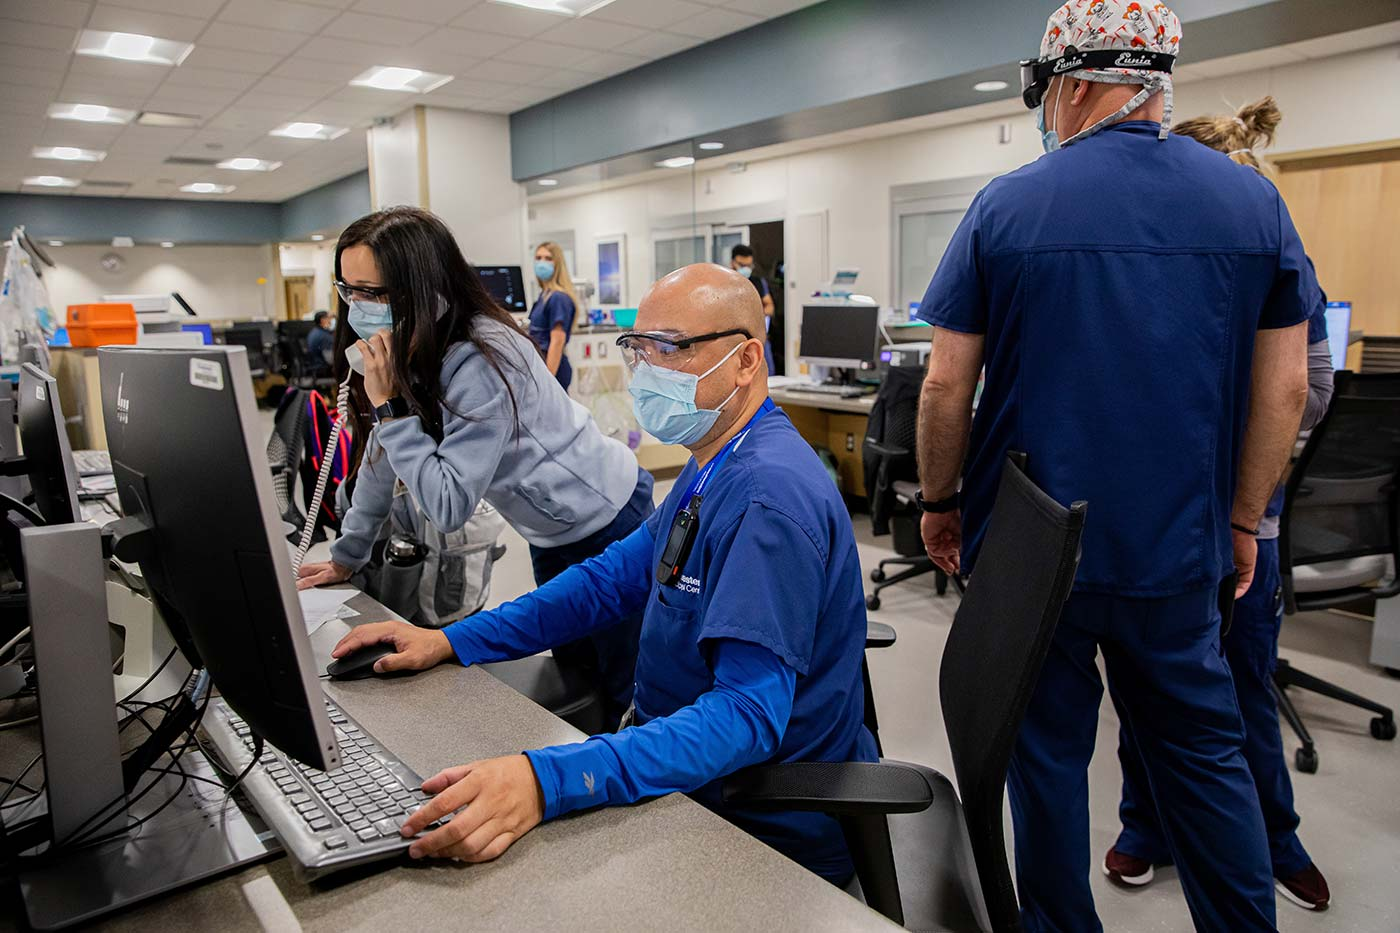 People in scrubs and masks working at computers